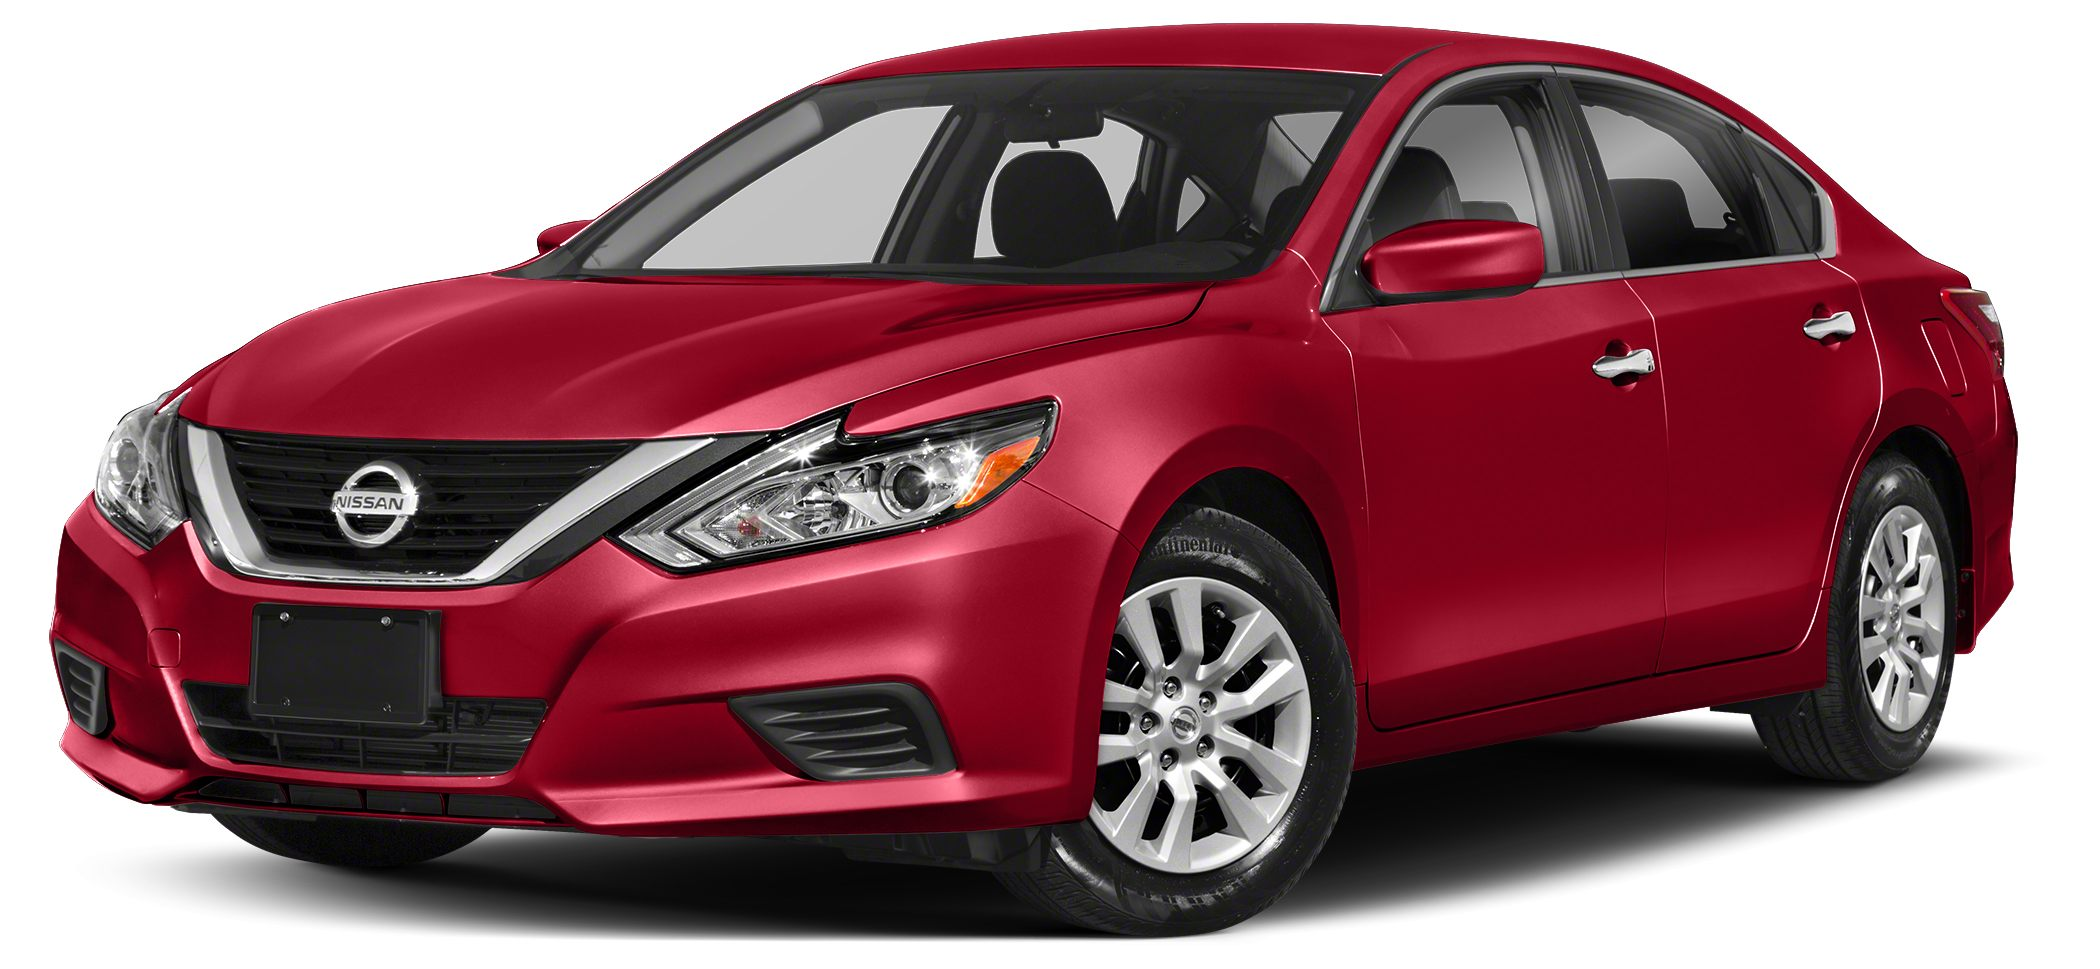 2018 Nissan Altima 25 SV The premium exterior design of the 2018 Nissan Altima from the powerful